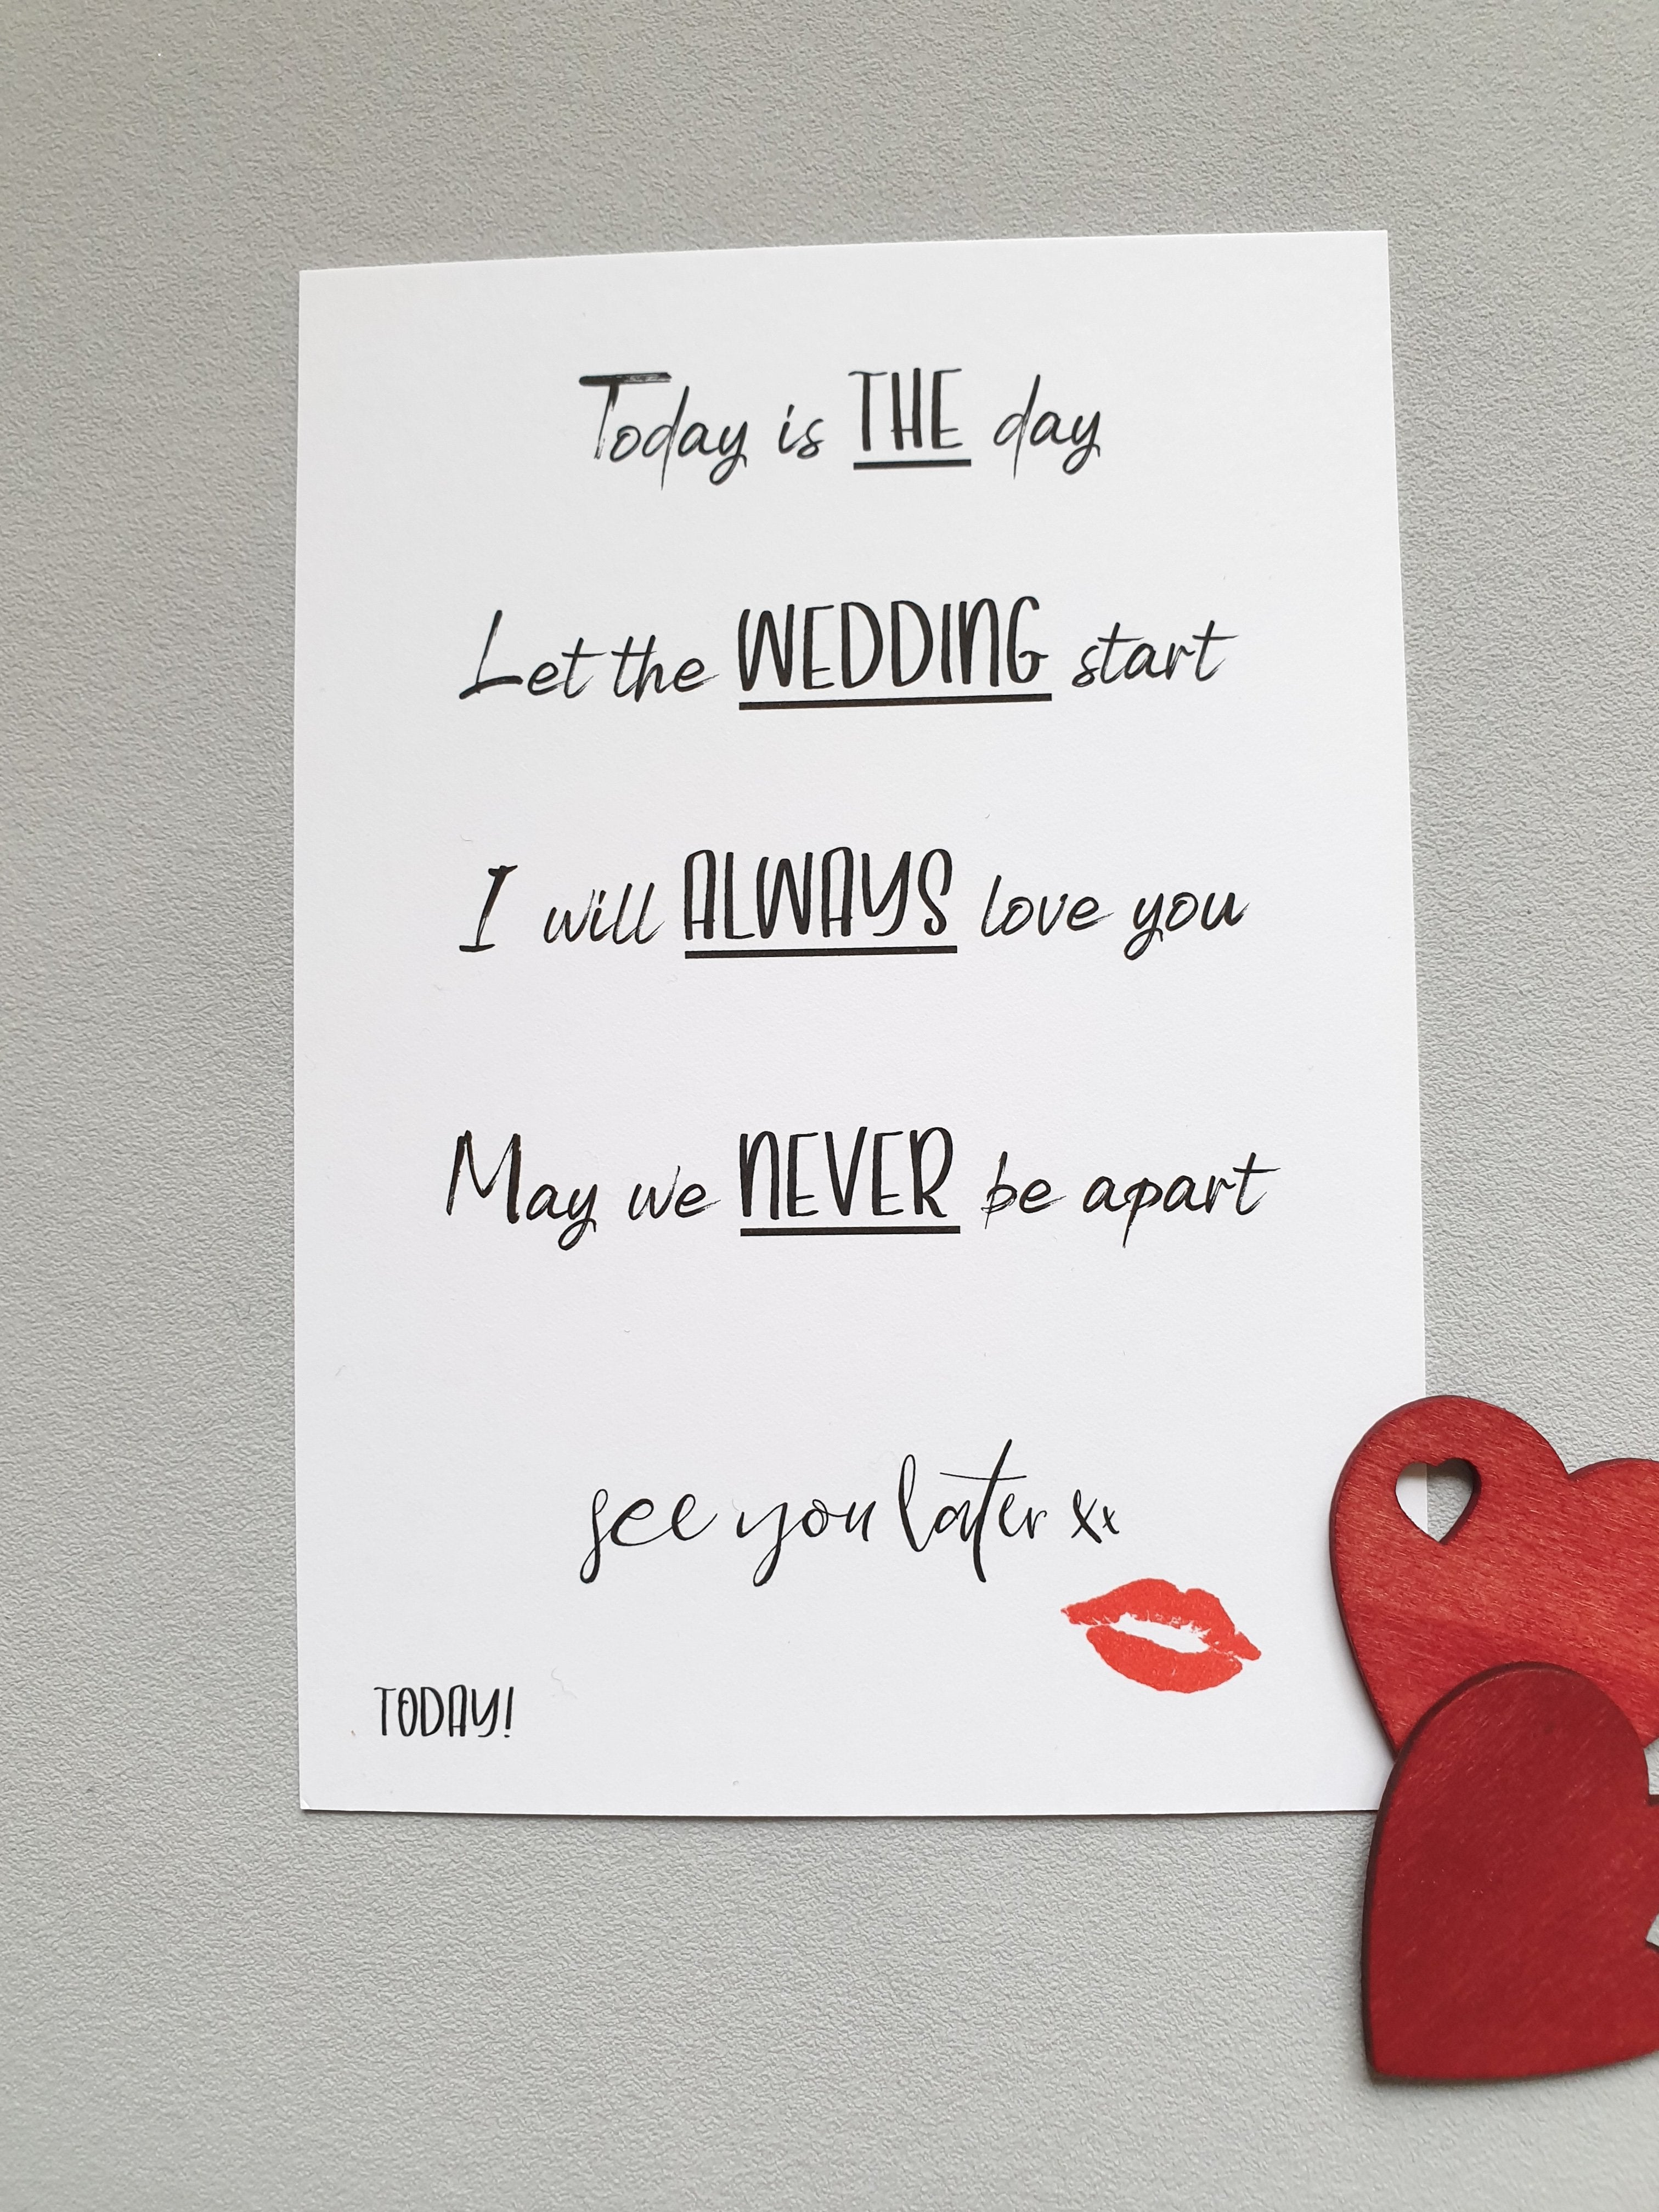 The '0 days to go' A6 Poppleberry wedding countdown postcard on white cardstock with lipstick kiss illustration.